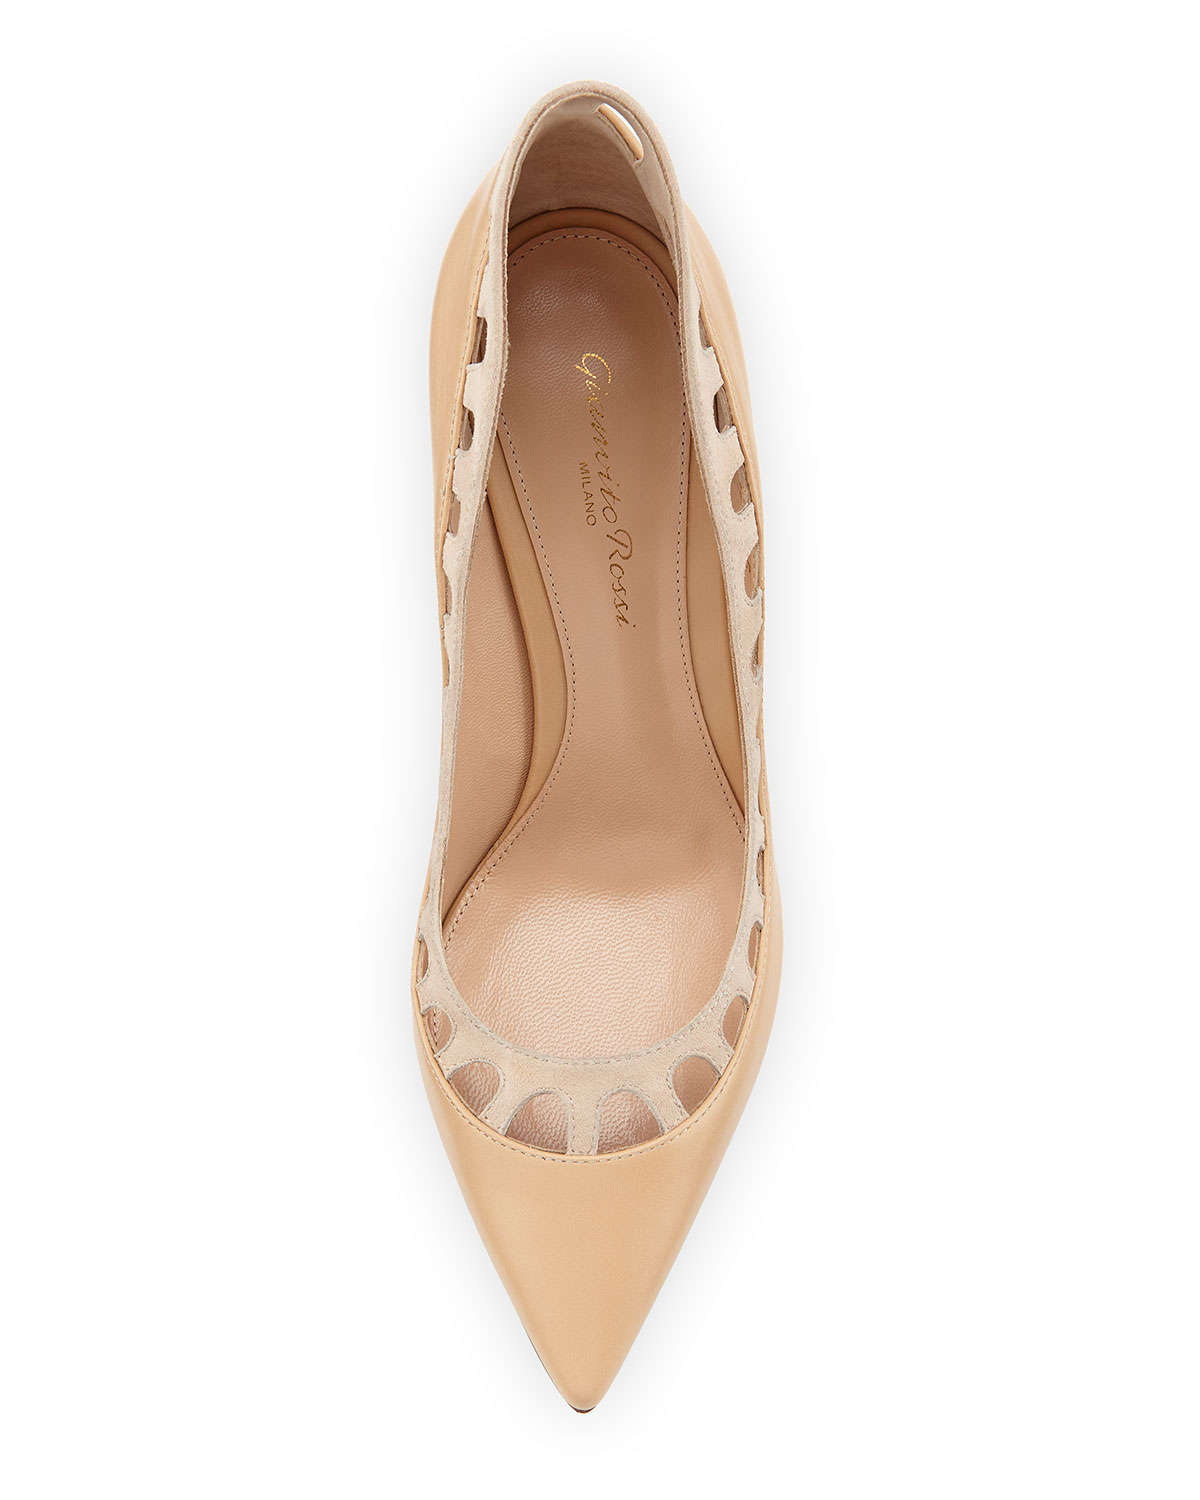 gianvito-rossi-nude-suede-cutout-collar-pump-beige-product-1-194325441-normal.jpeg